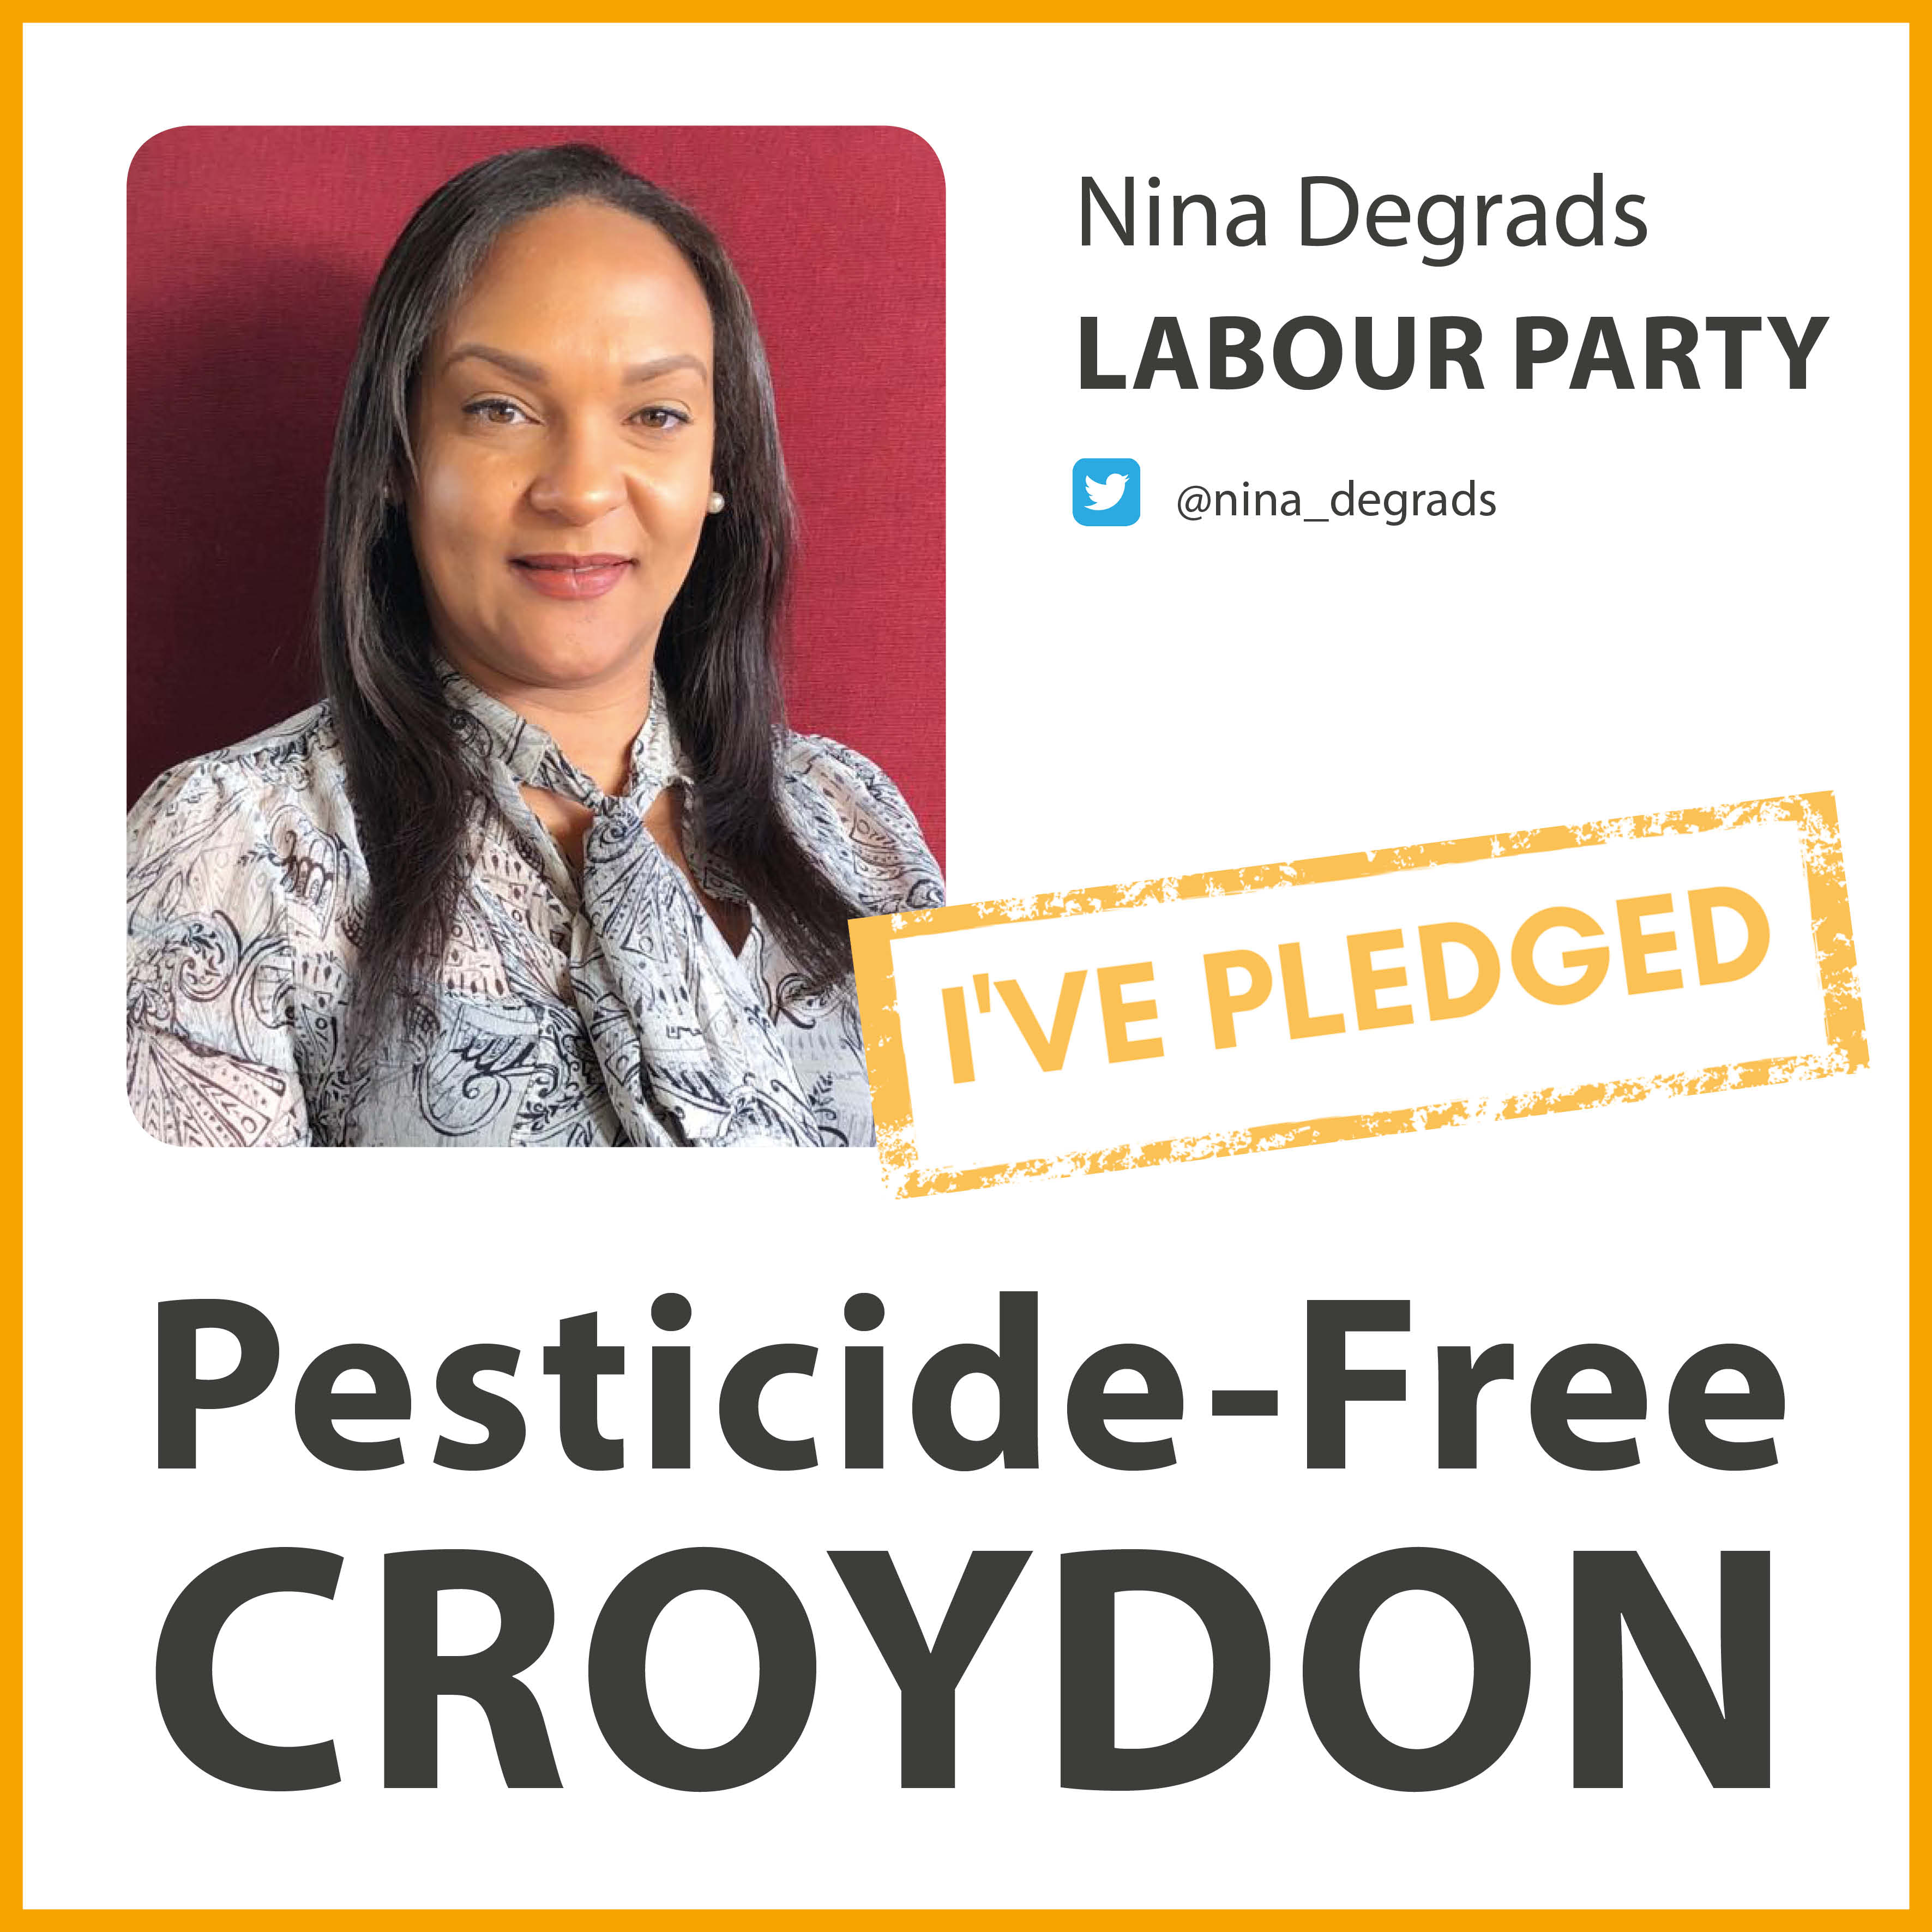 Nina Degrads has taken the pesticide-free pledge in Croydon